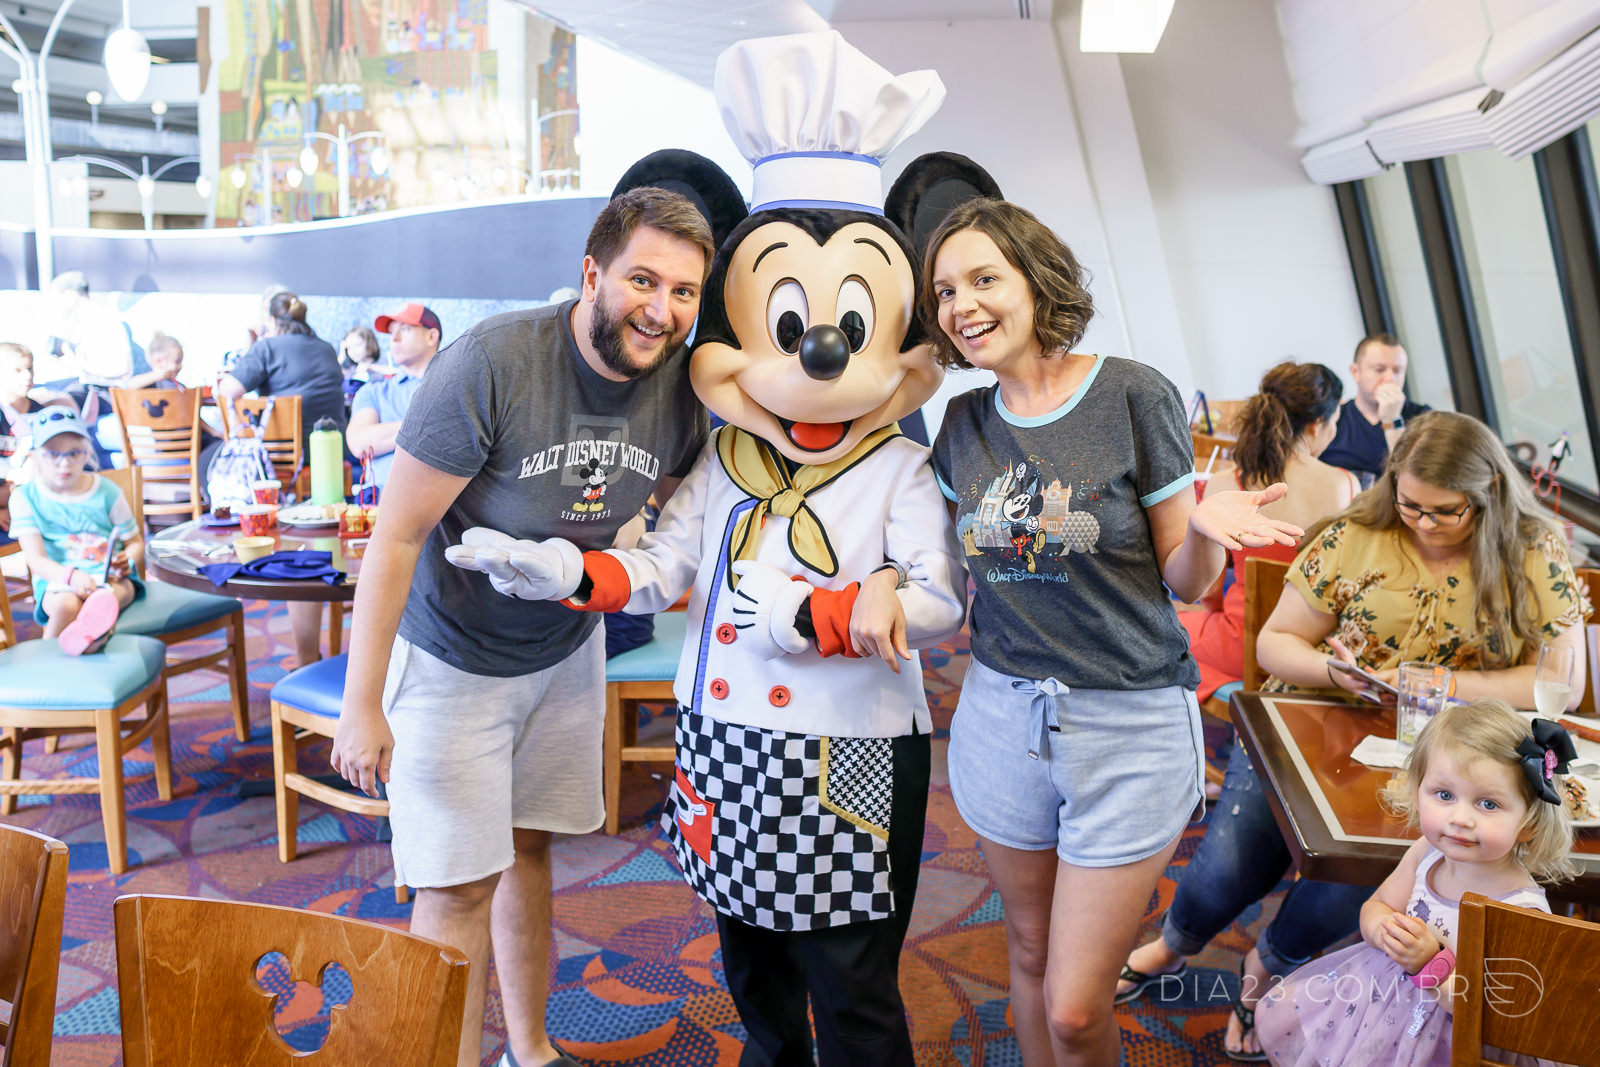 chef mickeys refeição com personagem